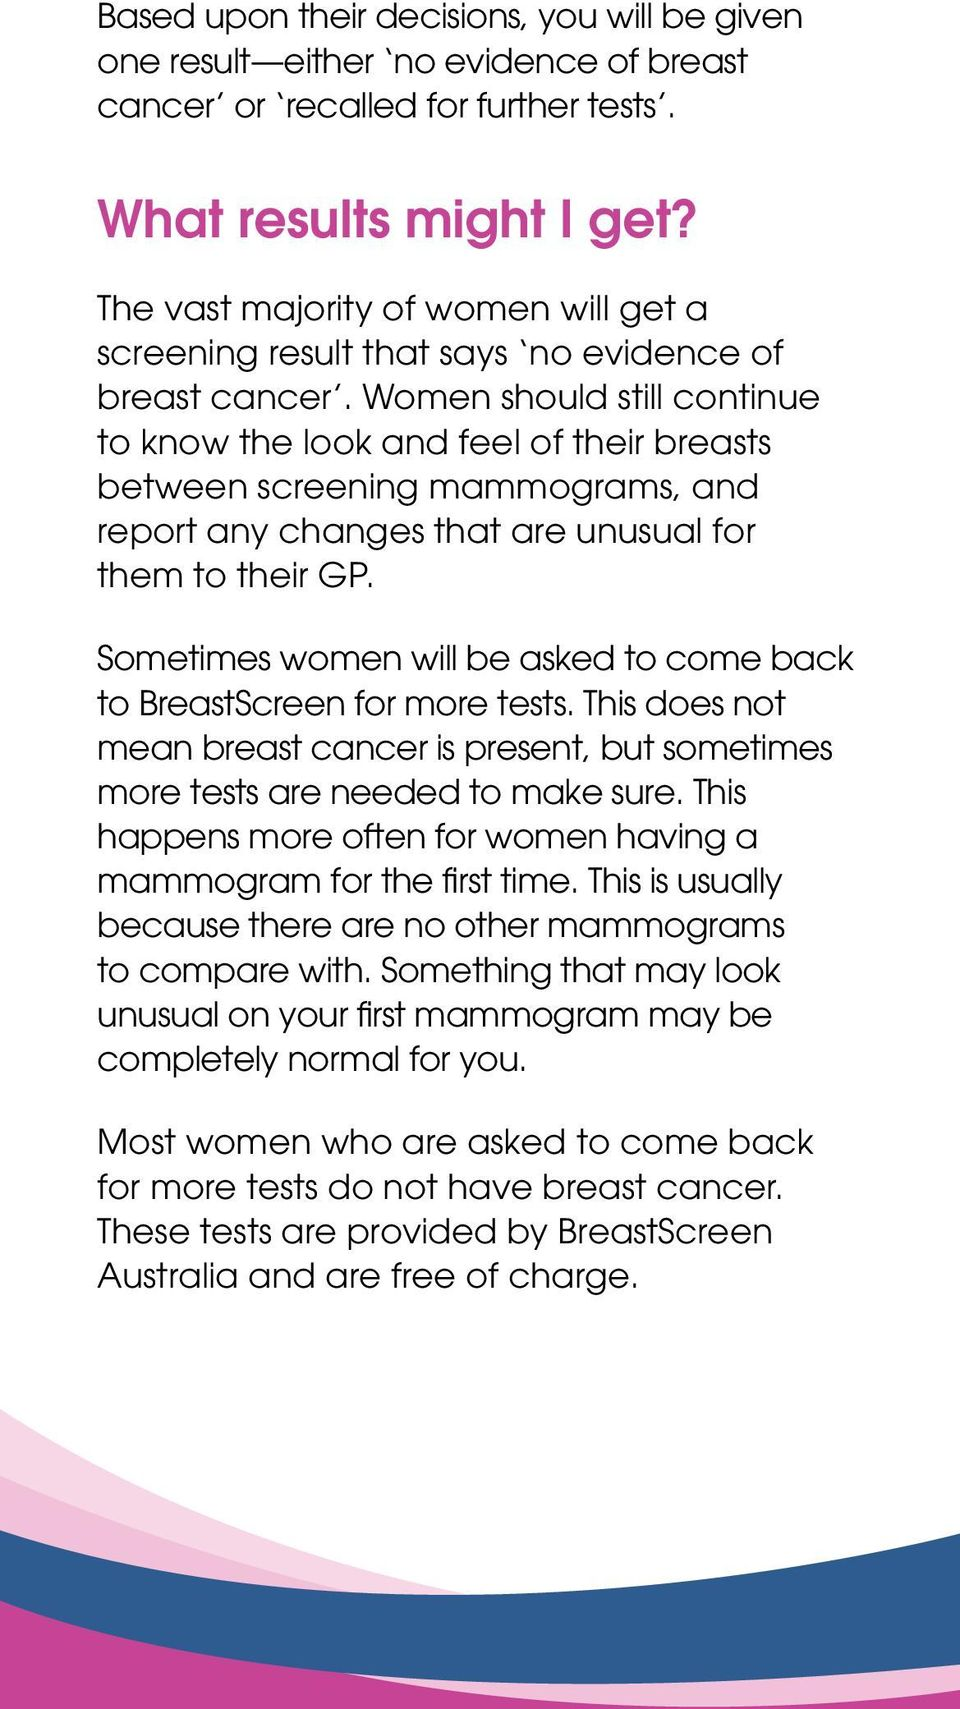 Women should still continue to know the look and feel of their breasts between screening mammograms, and report any changes that are unusual for them to their GP.